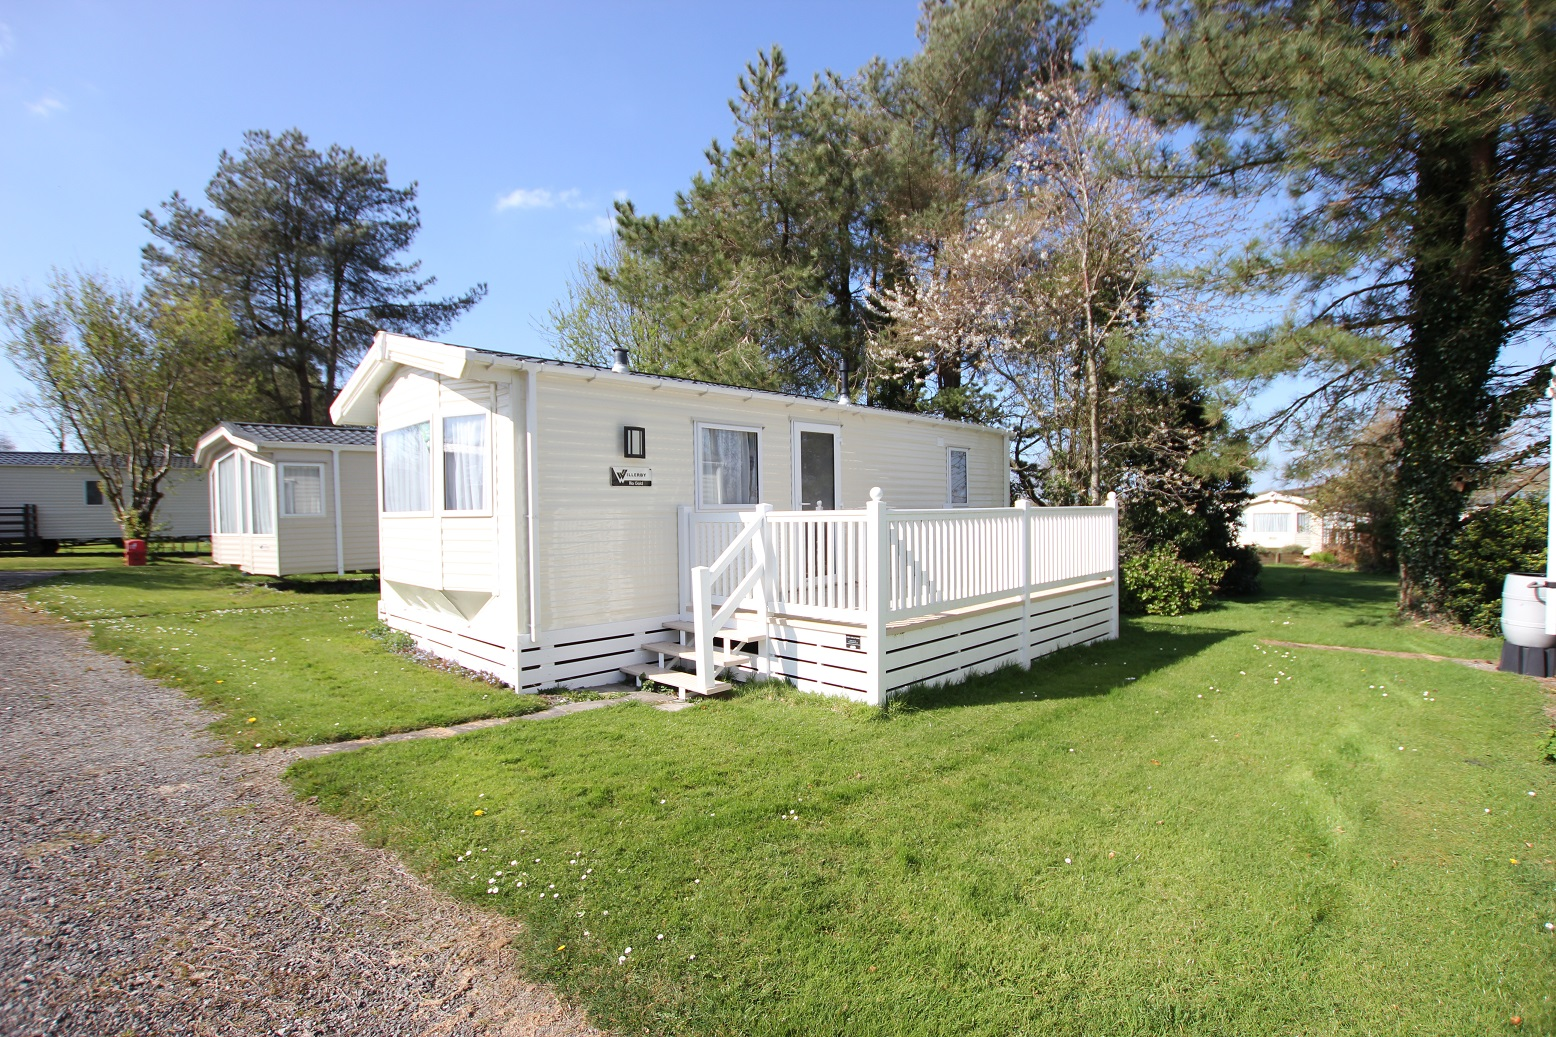 Static Caravan for sale. Willerby Rio Gold. SOLD